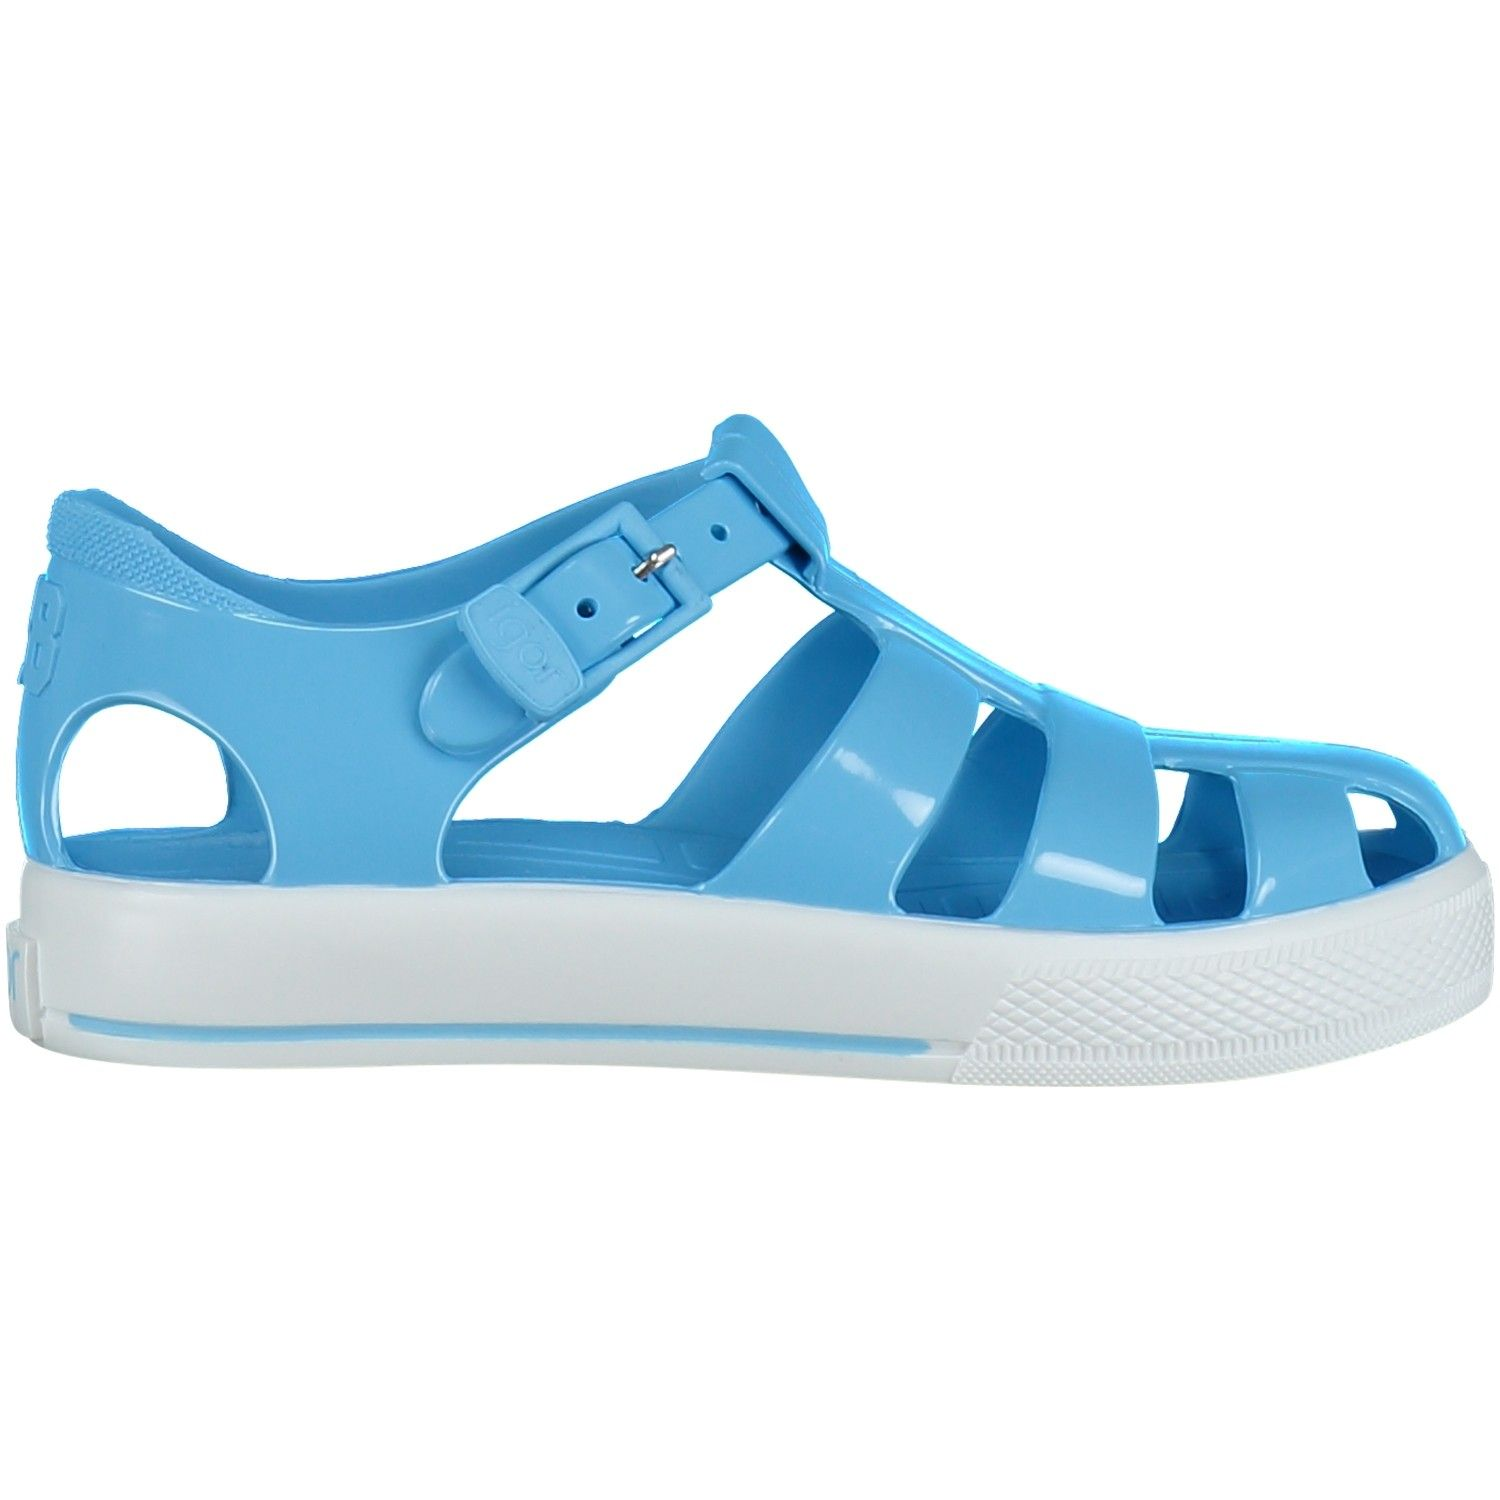 Picture of Igor S10164 kids sandals light blue